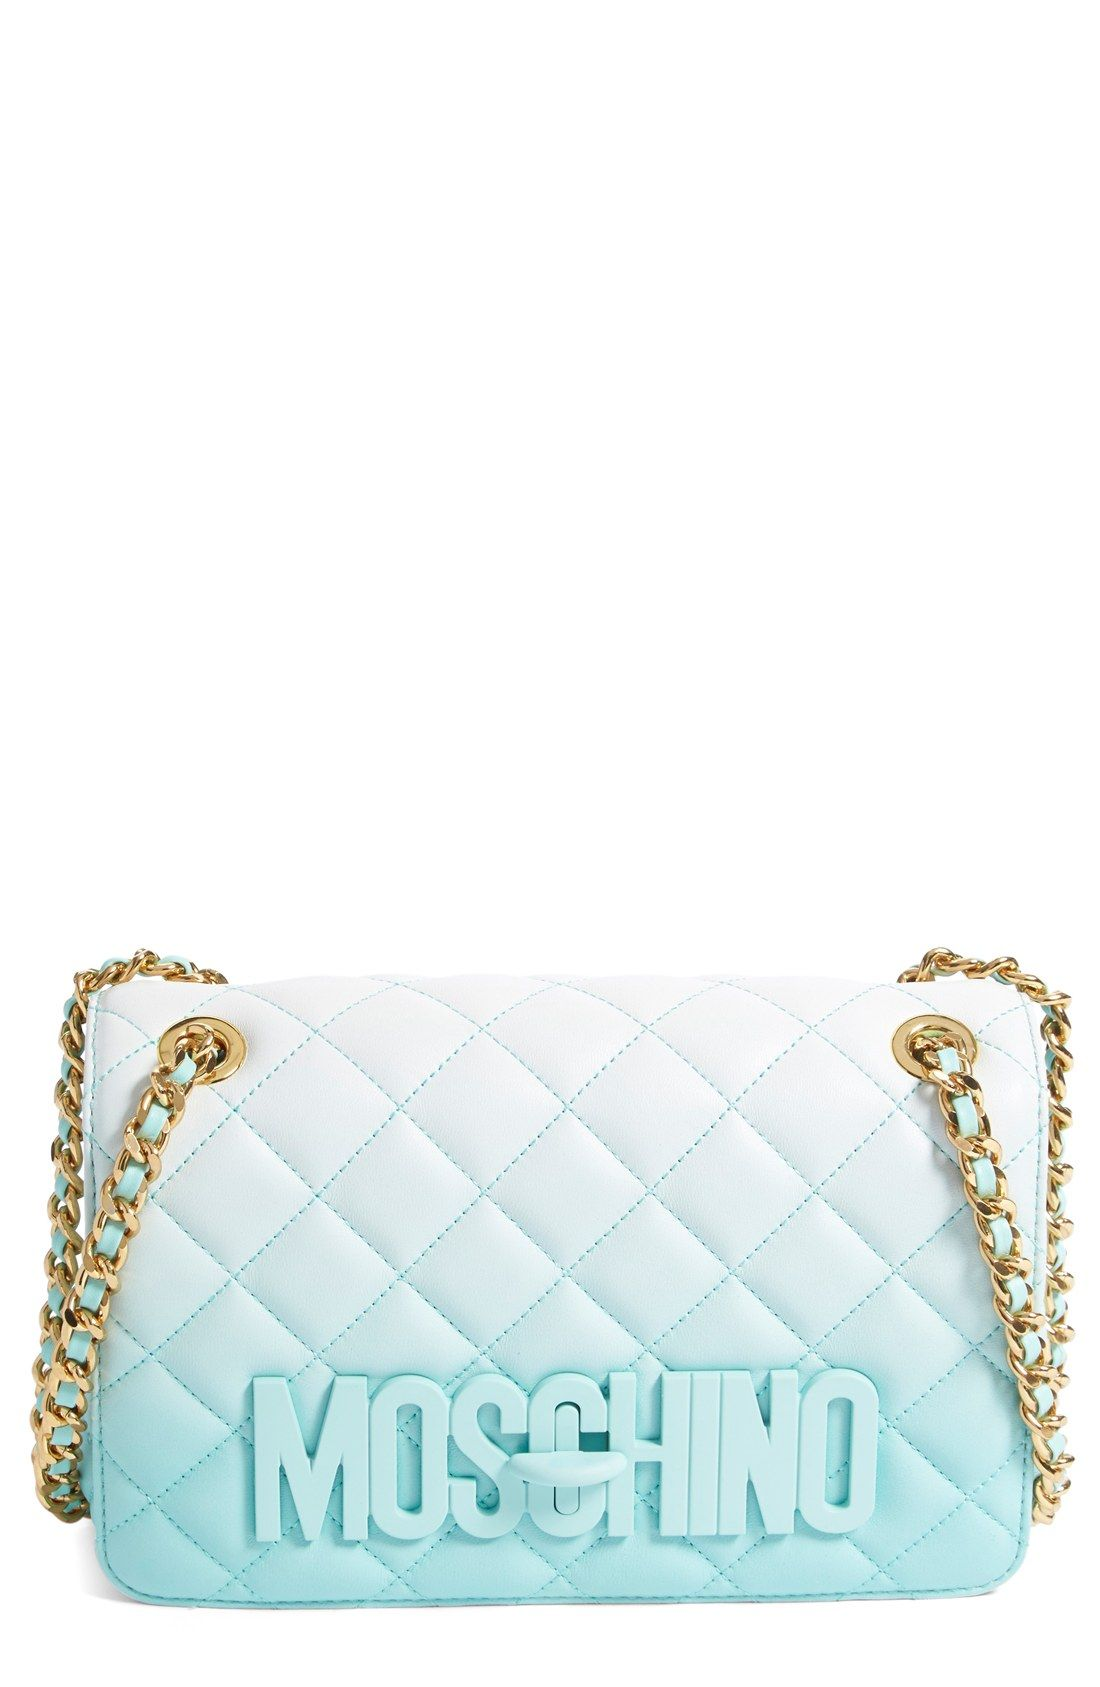 523ccbffd7 Moschino 'Medium Letters' Dégradé Quilted Leather Shoulder Bag ...